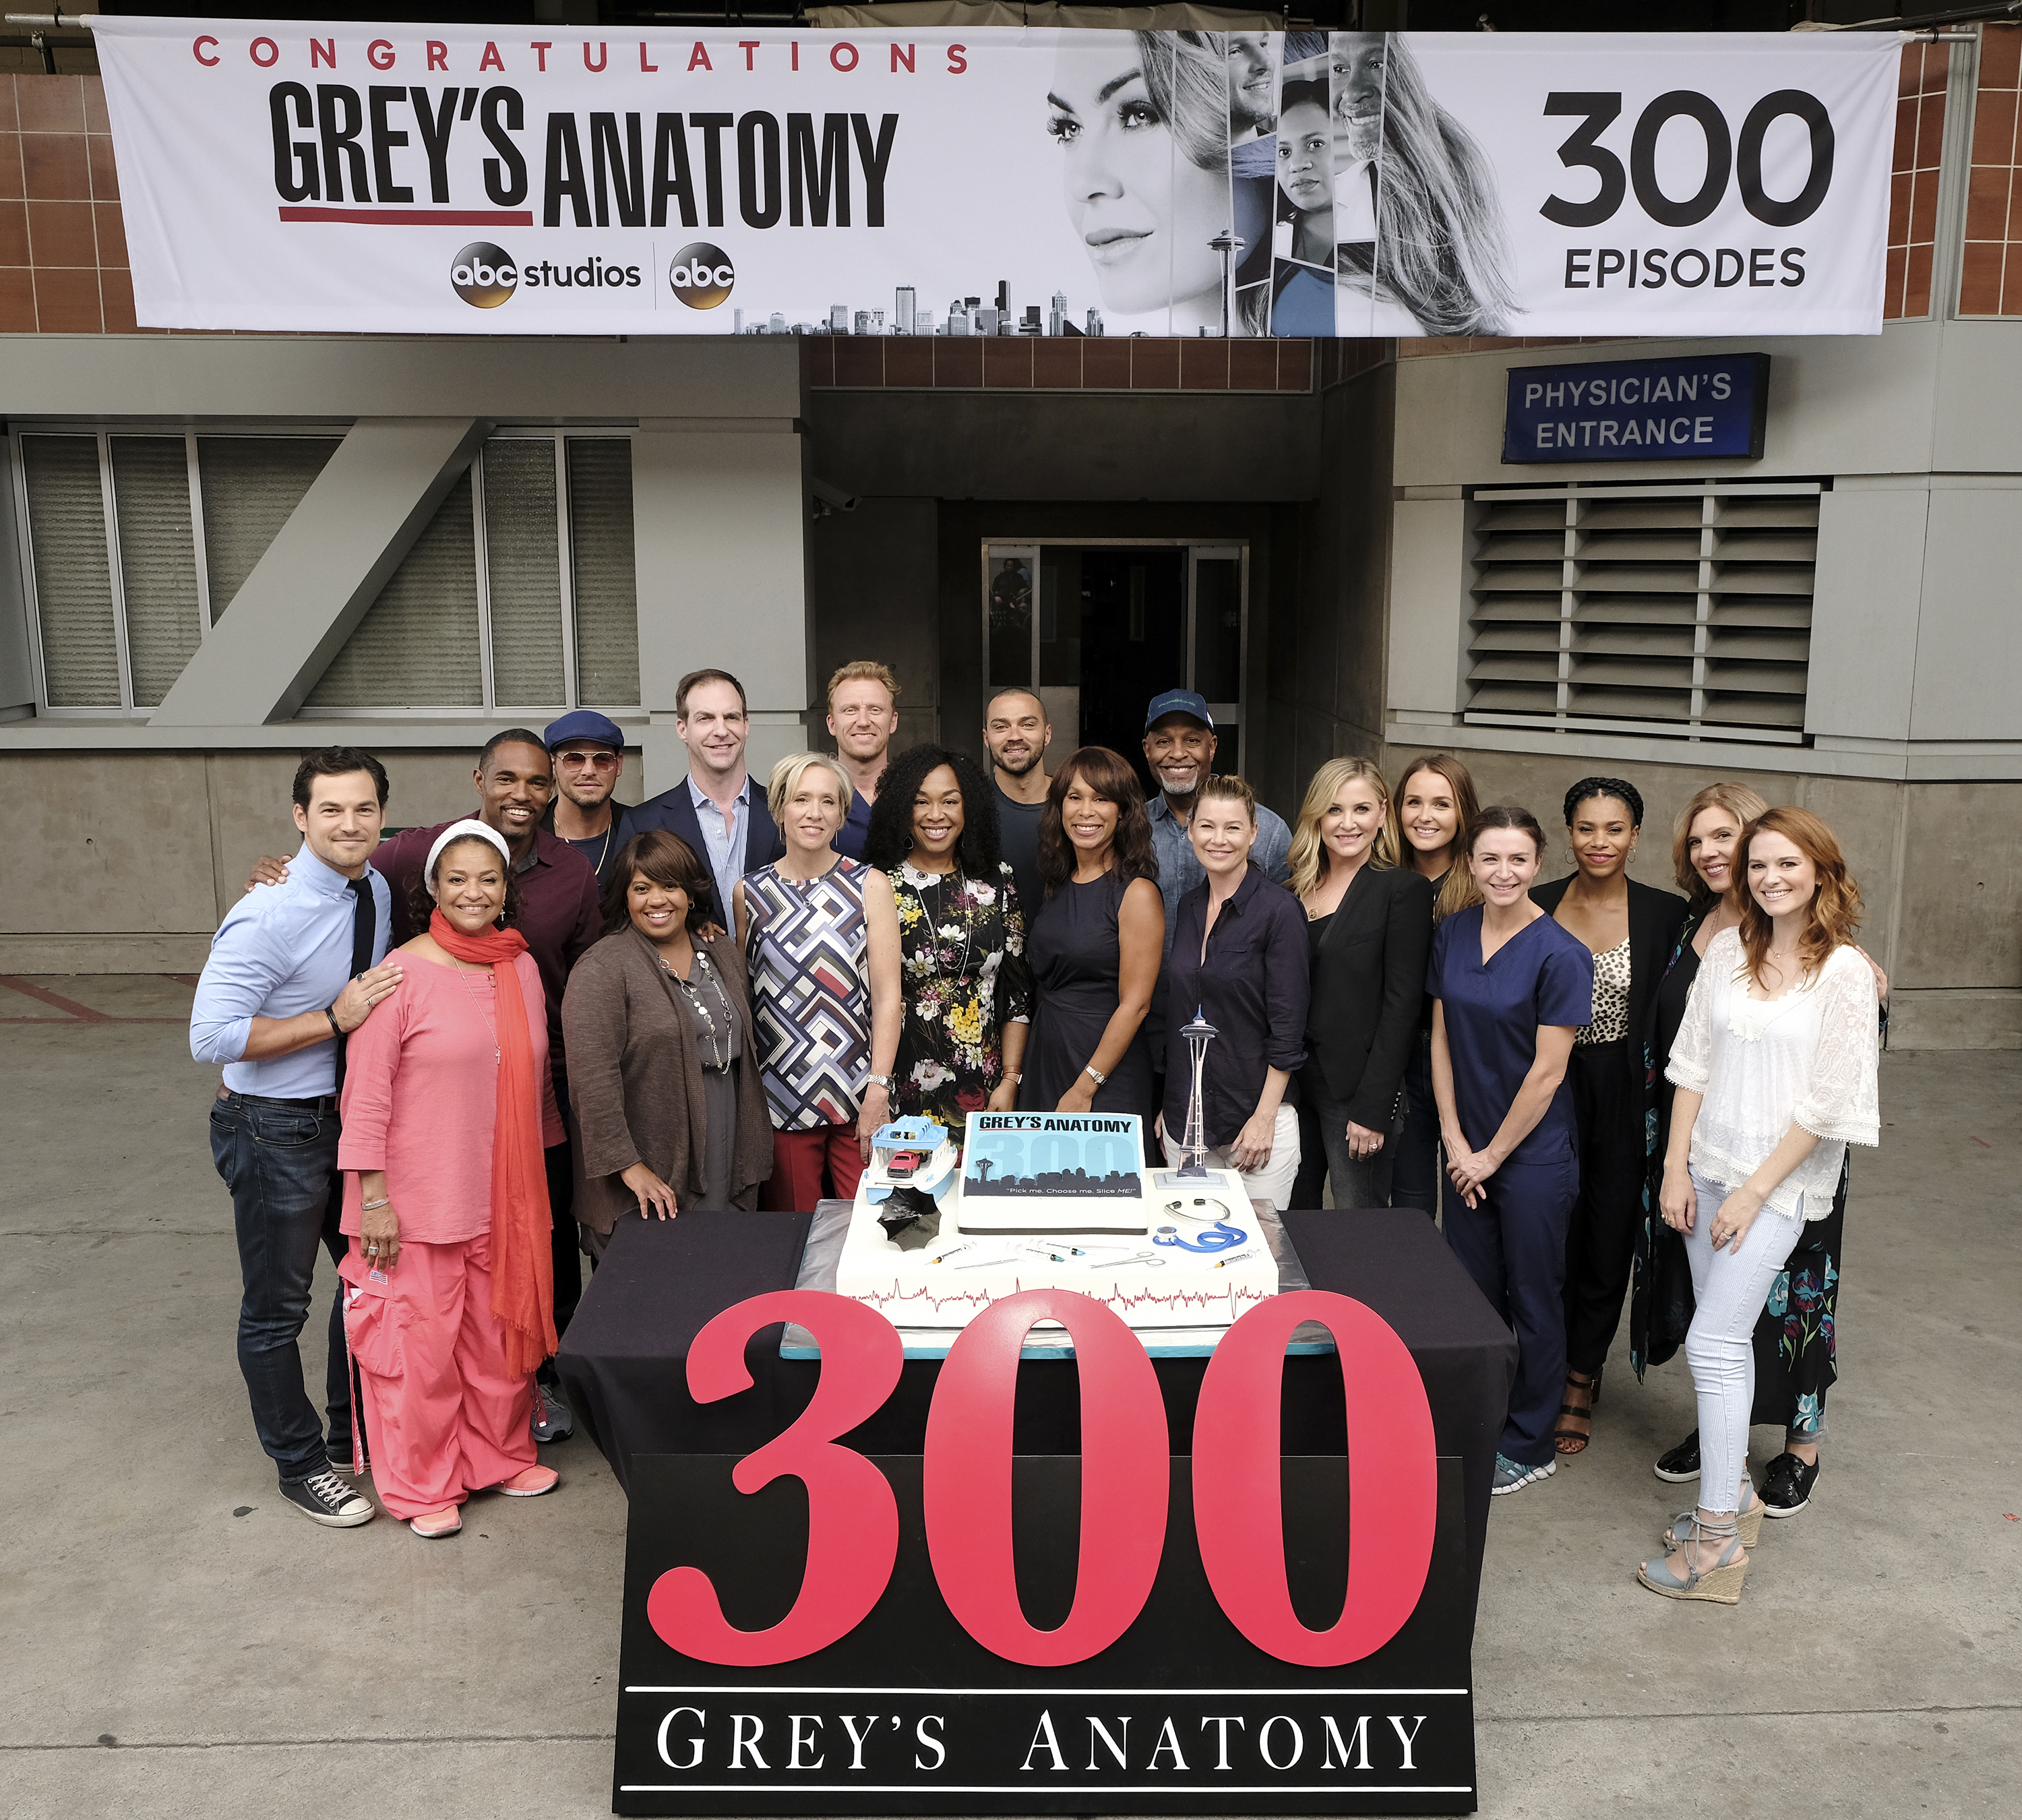 Greys Anatomy Abc To Celebrate 300th Episode Of Their Top Rated